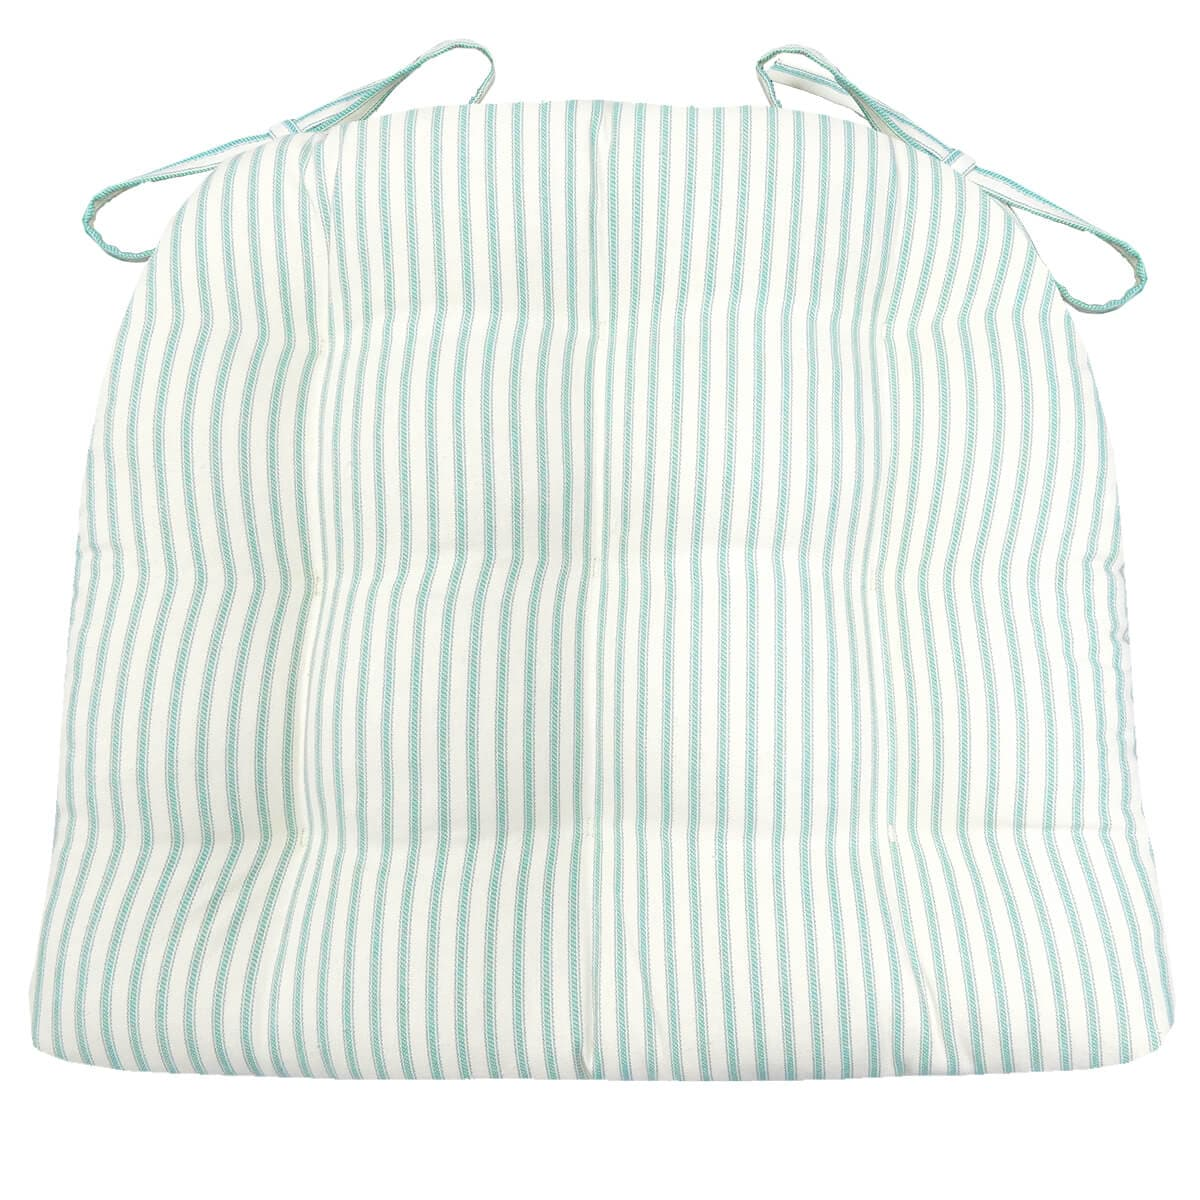 Berlin Ticking Aqua Dining Chair Pads | Barnett Home Decor | Ticking Stripe